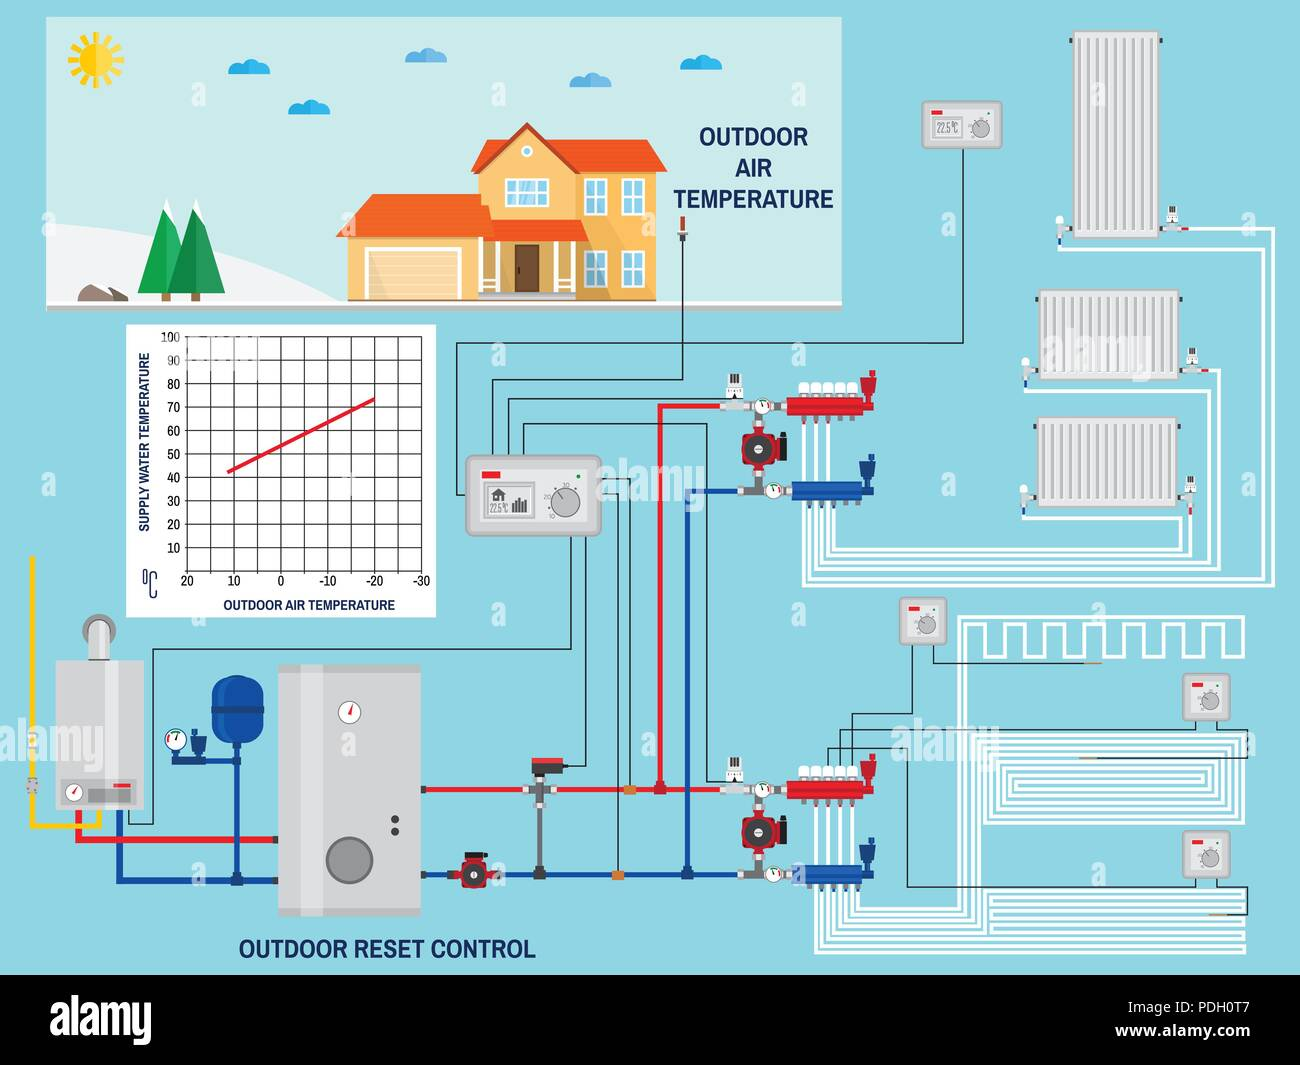 Smart energy-saving heating system with outdoor reset control. Smart House with outdoor reset control. Gas boiler, heating systems. Manifold with Pump Stock Vector